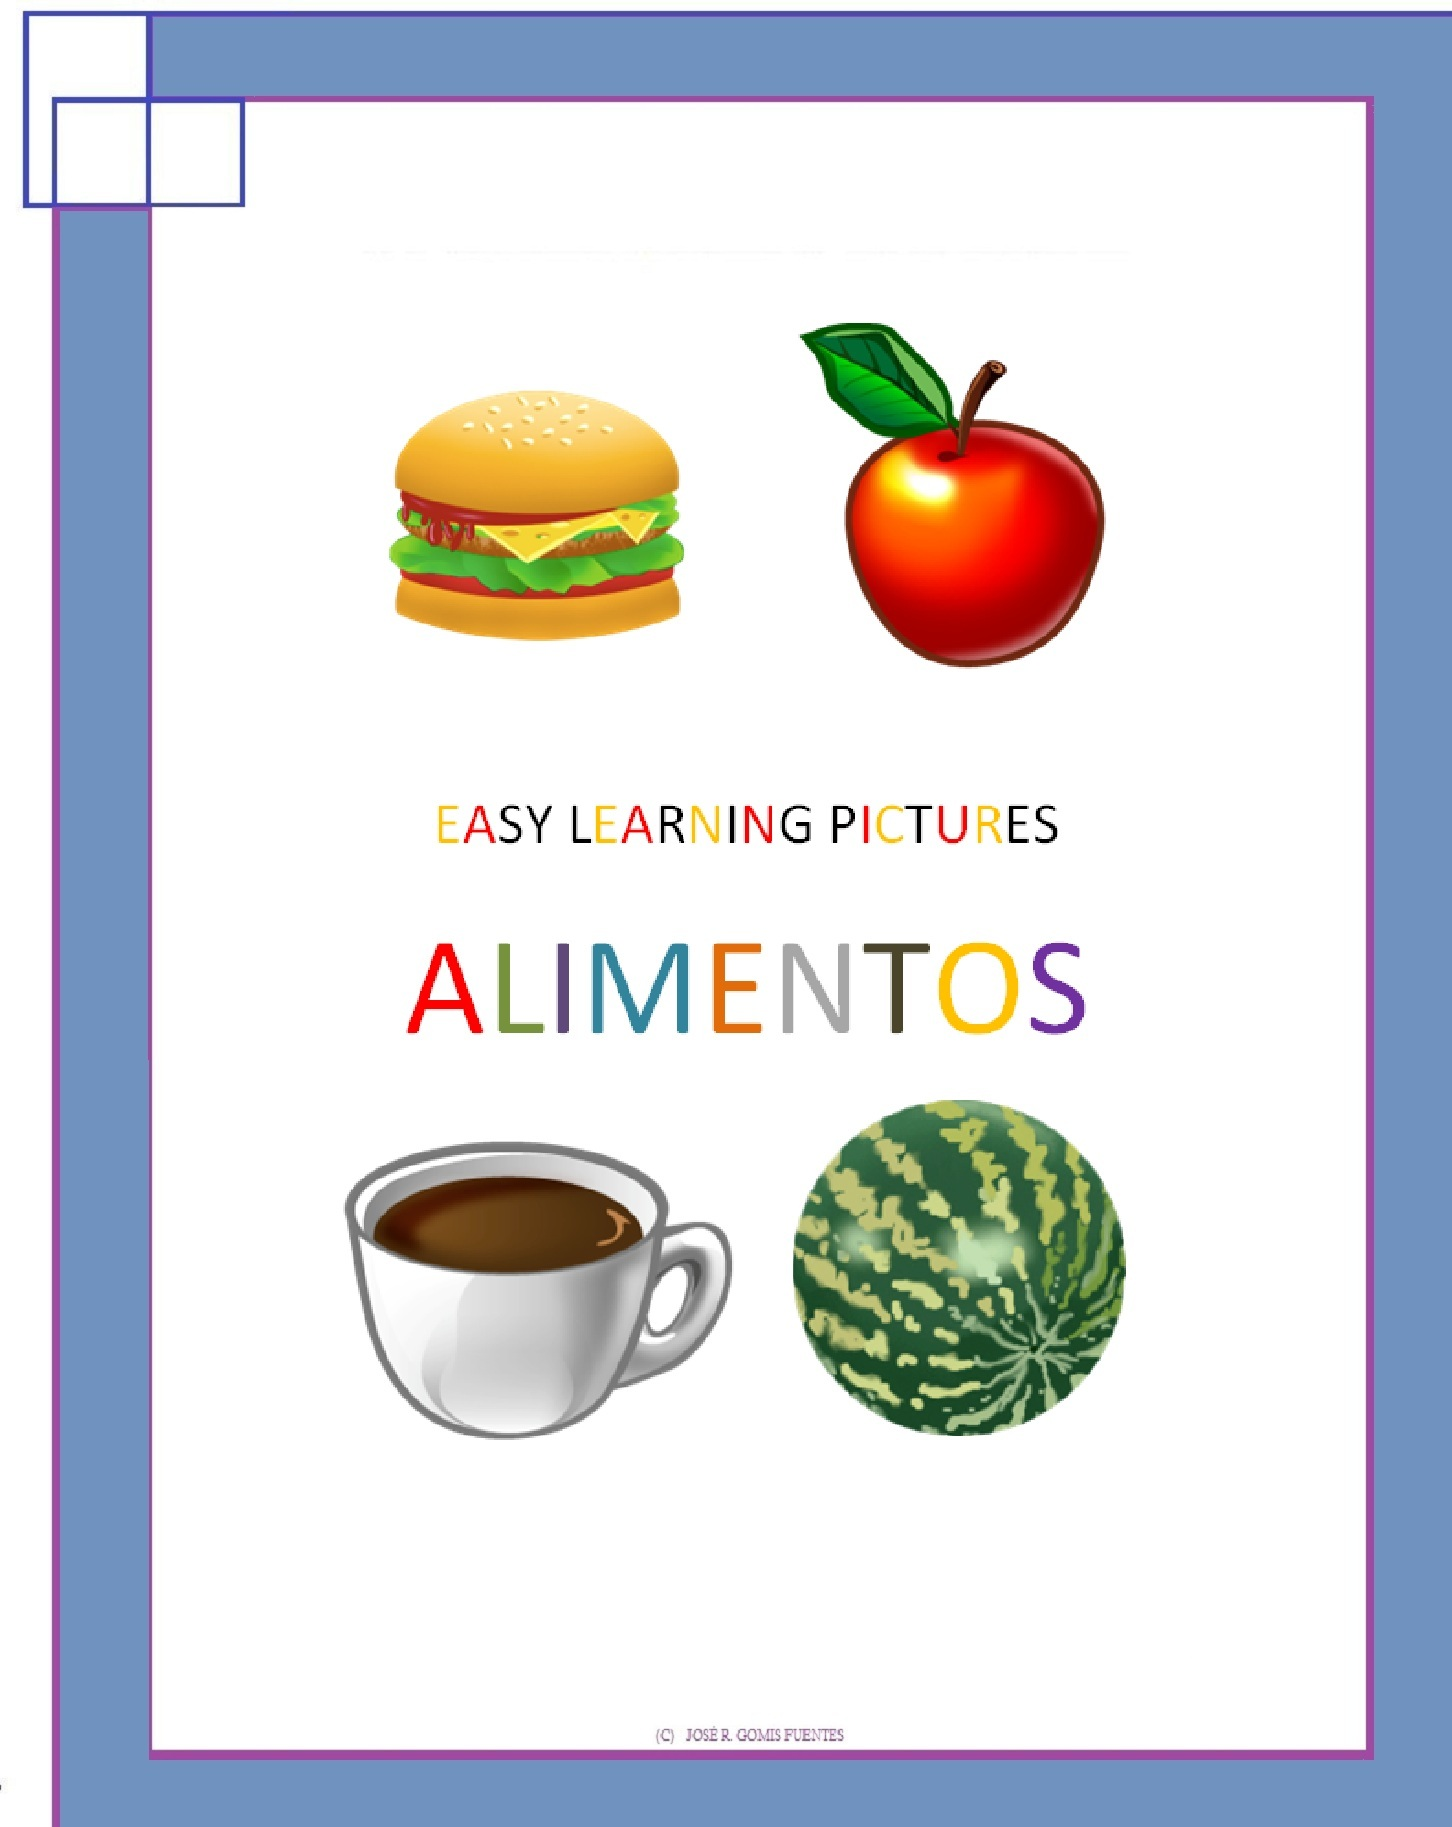 Easy Learning pictures. Alimentos